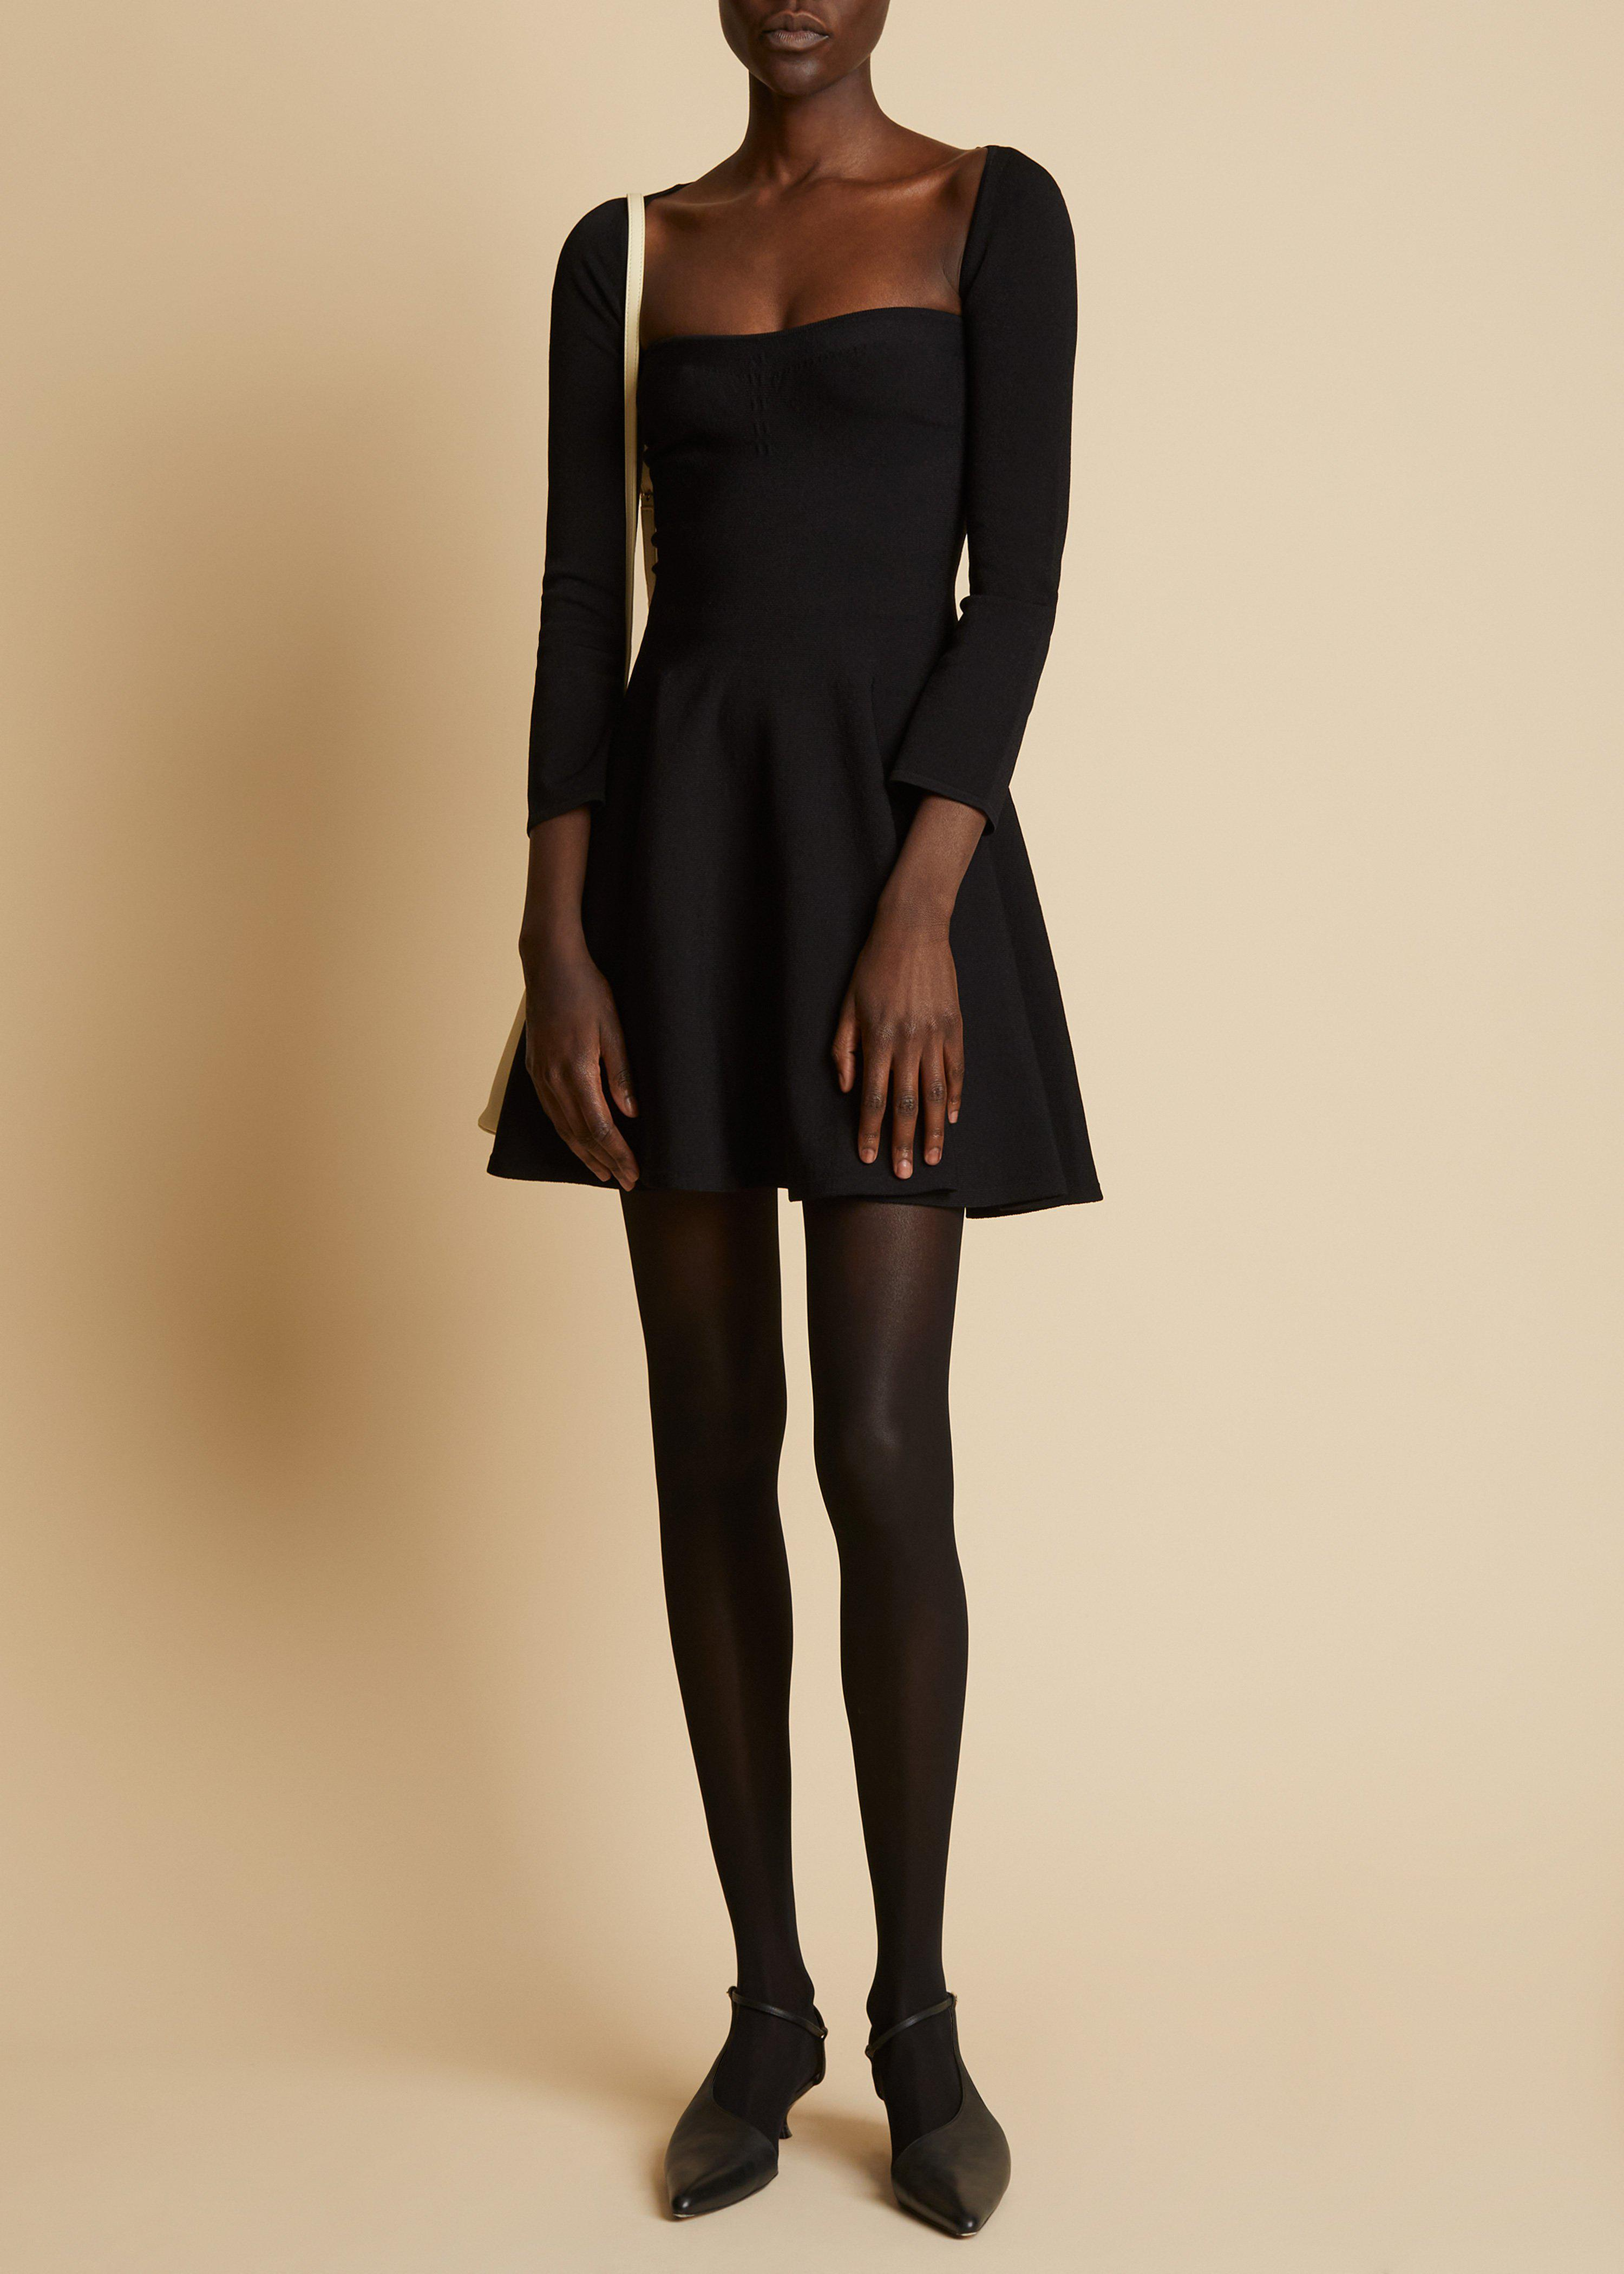 The Dylan Dress in Black